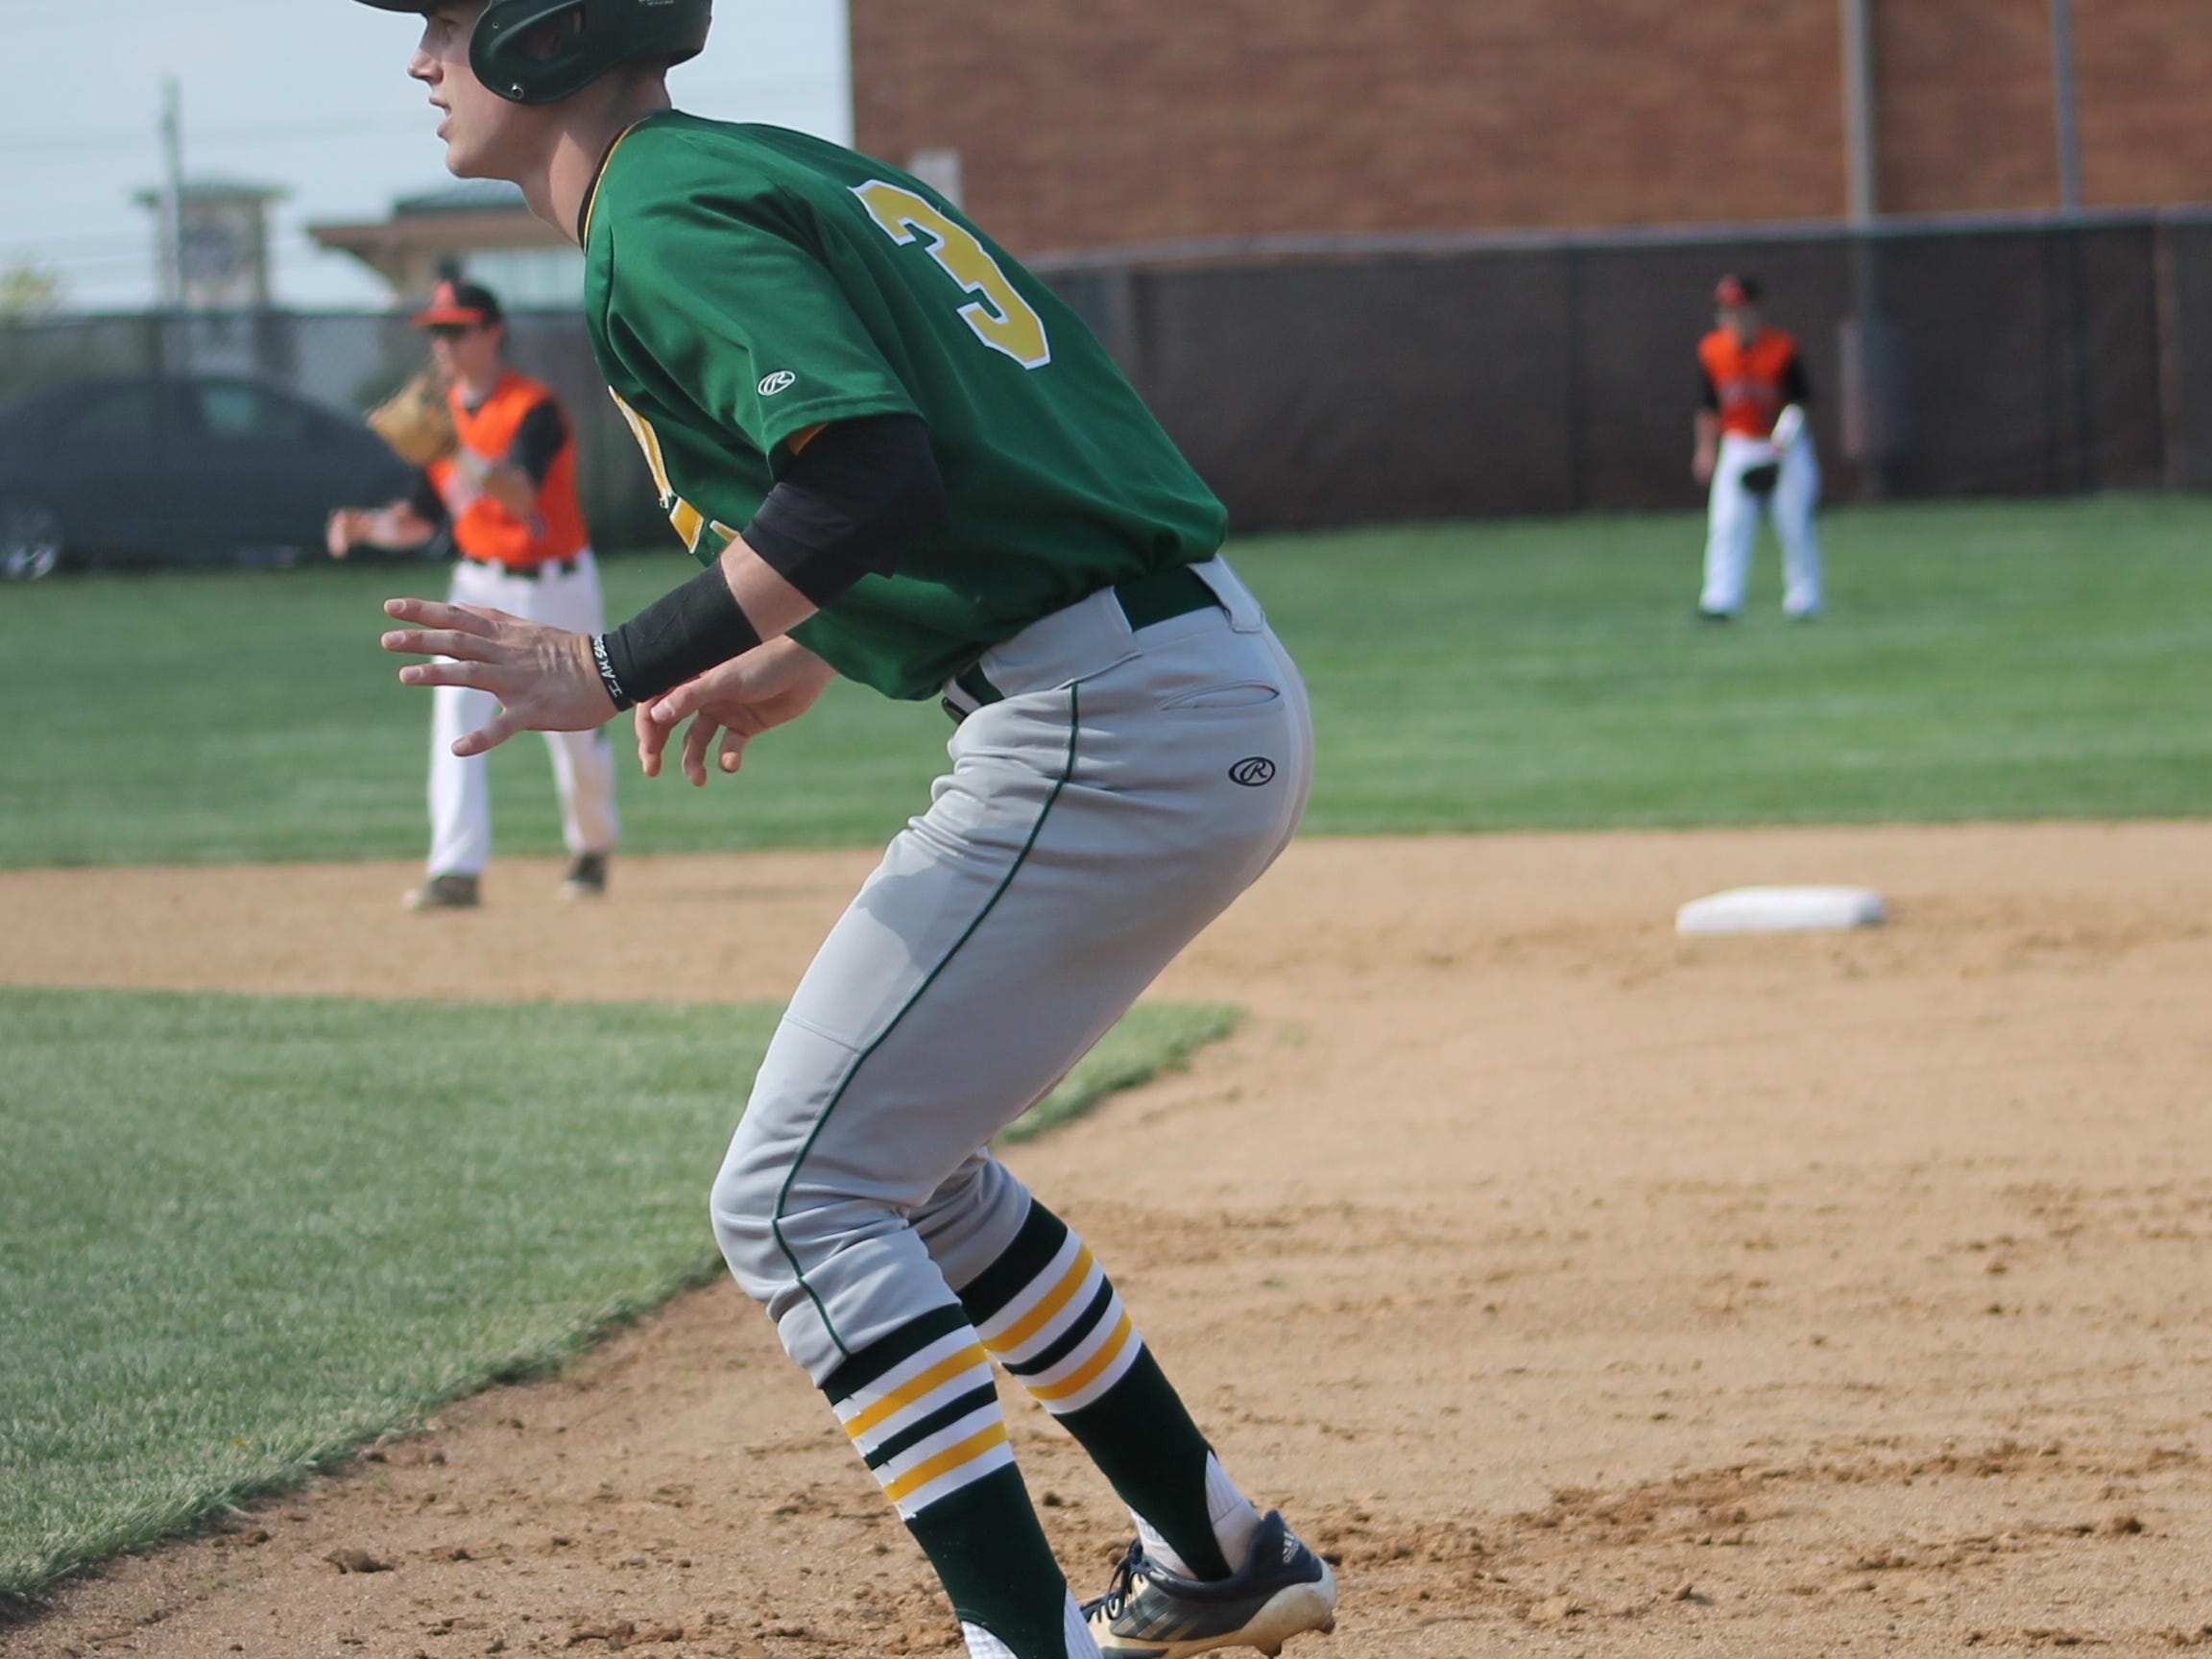 Sycamore senior Ryan Wahler gets a lead off against Anderson May 12. The Aves fell short in their Division I tournament game 4-2.